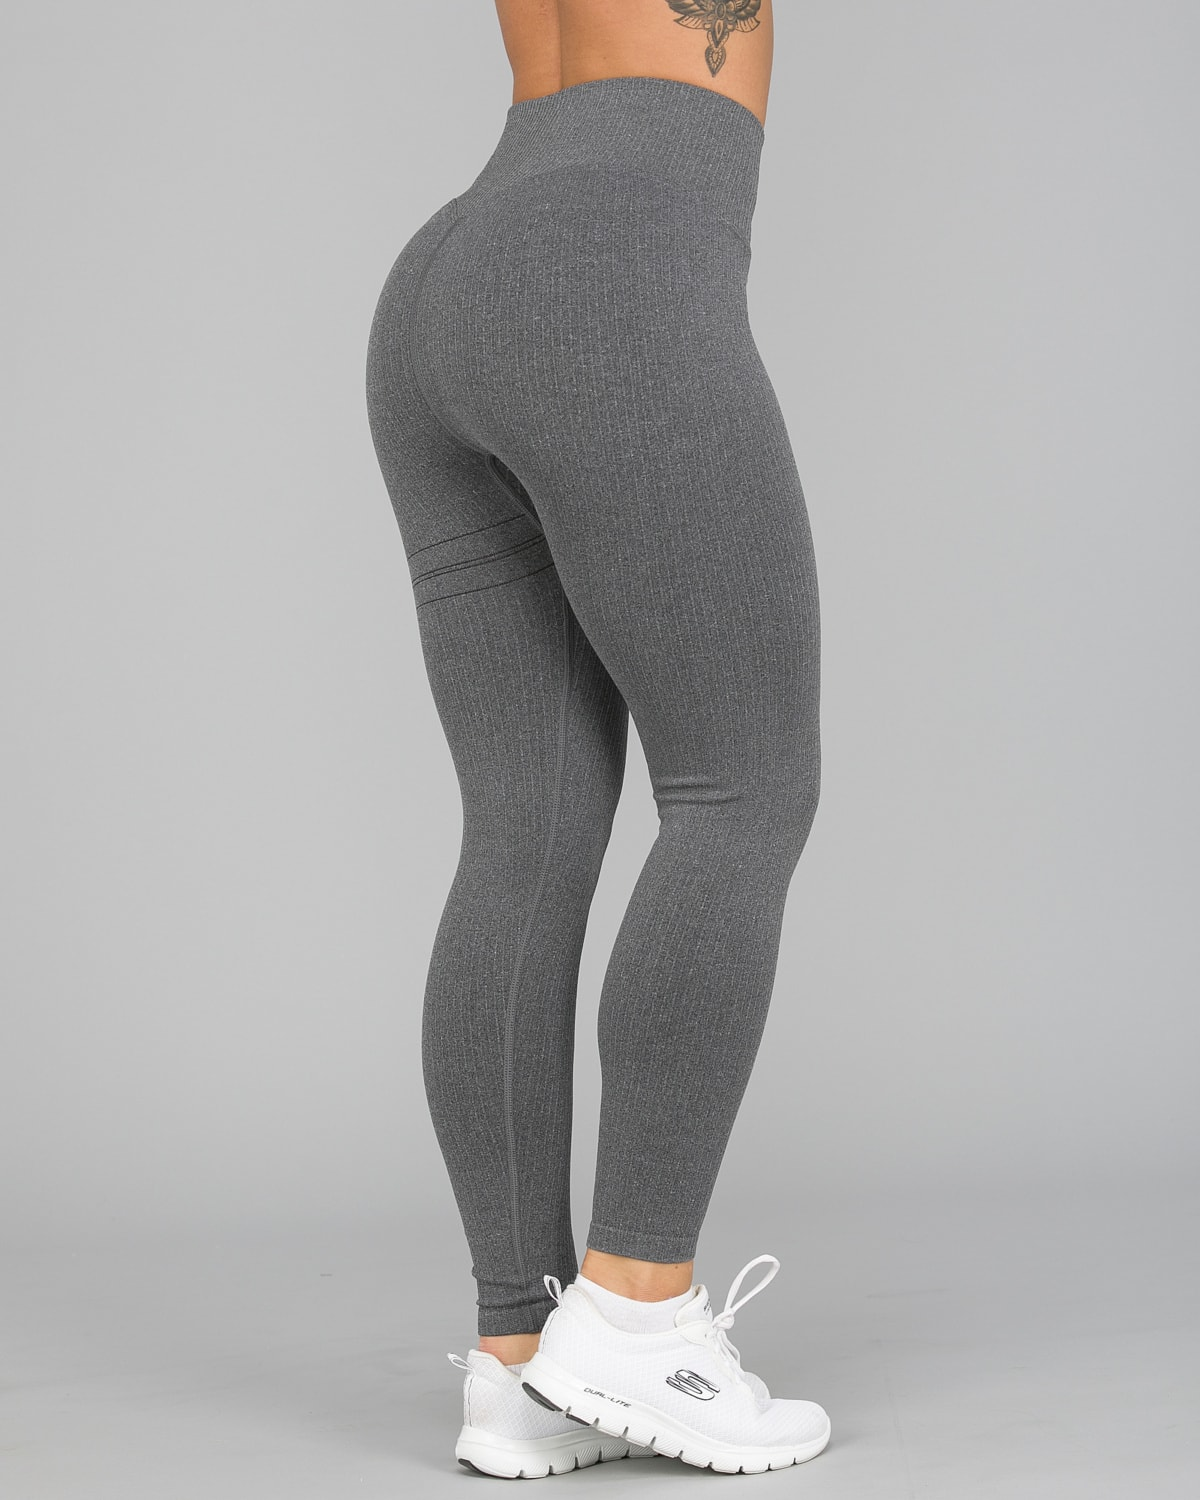 Aim'n Grey Ribbed Seamless Tights2